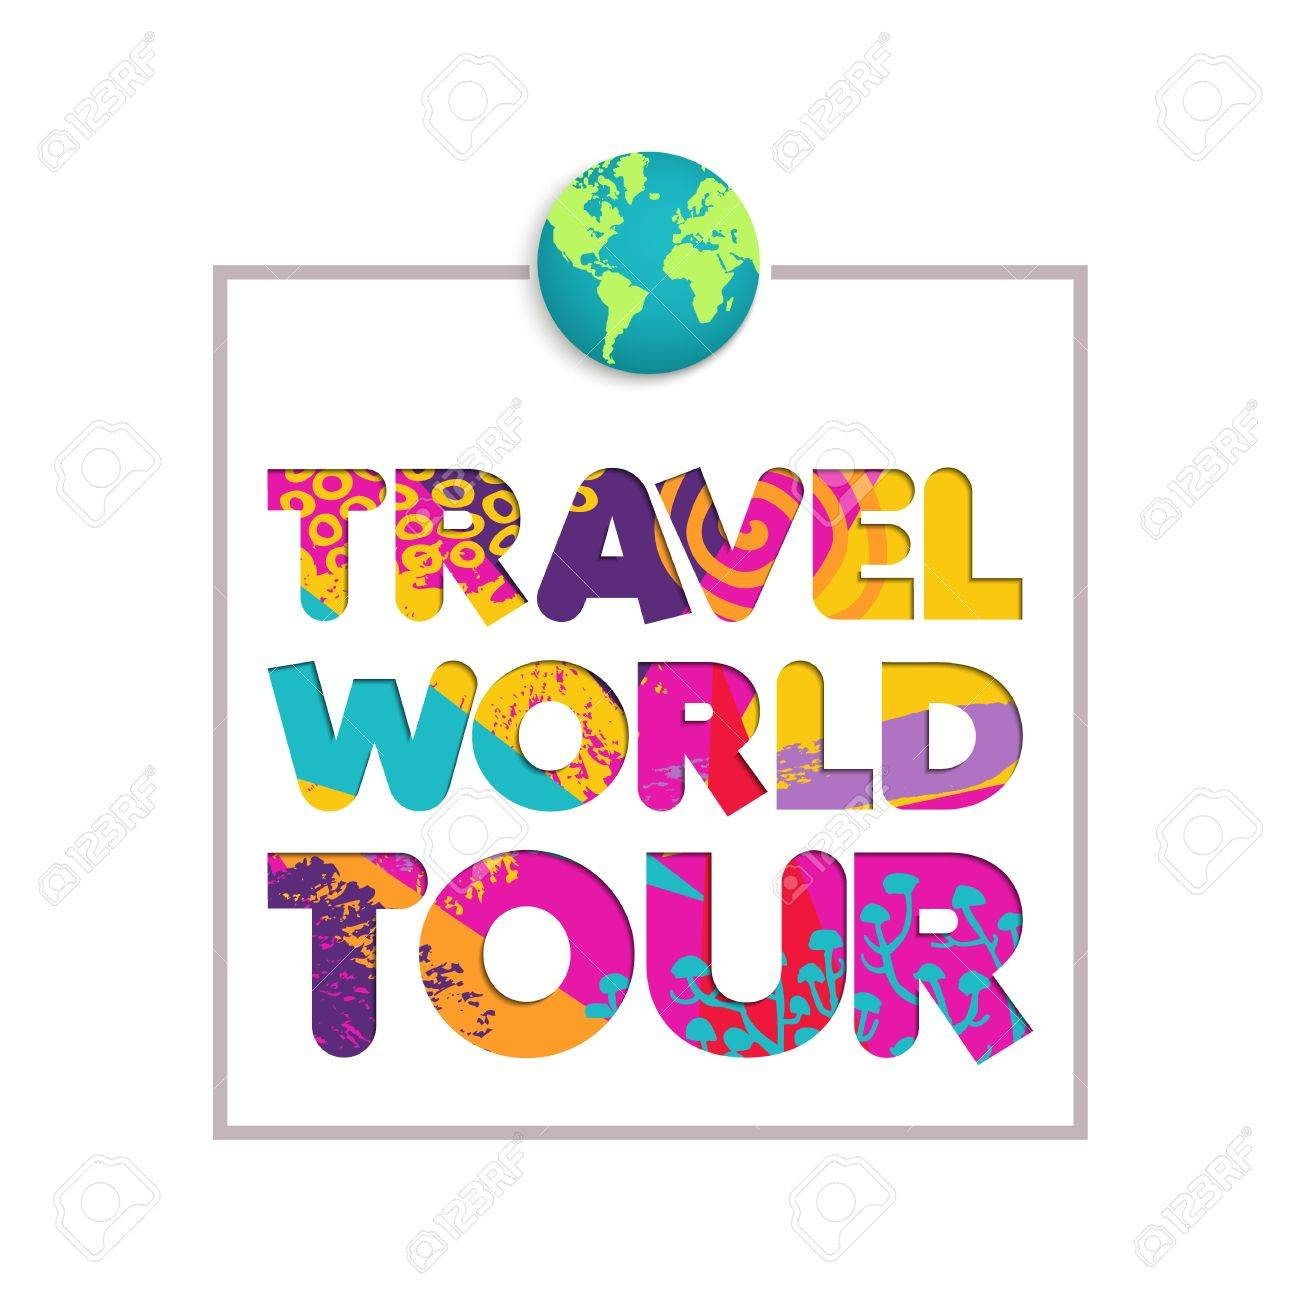 Travel The World Color Quote Typography Design In Paper Cut